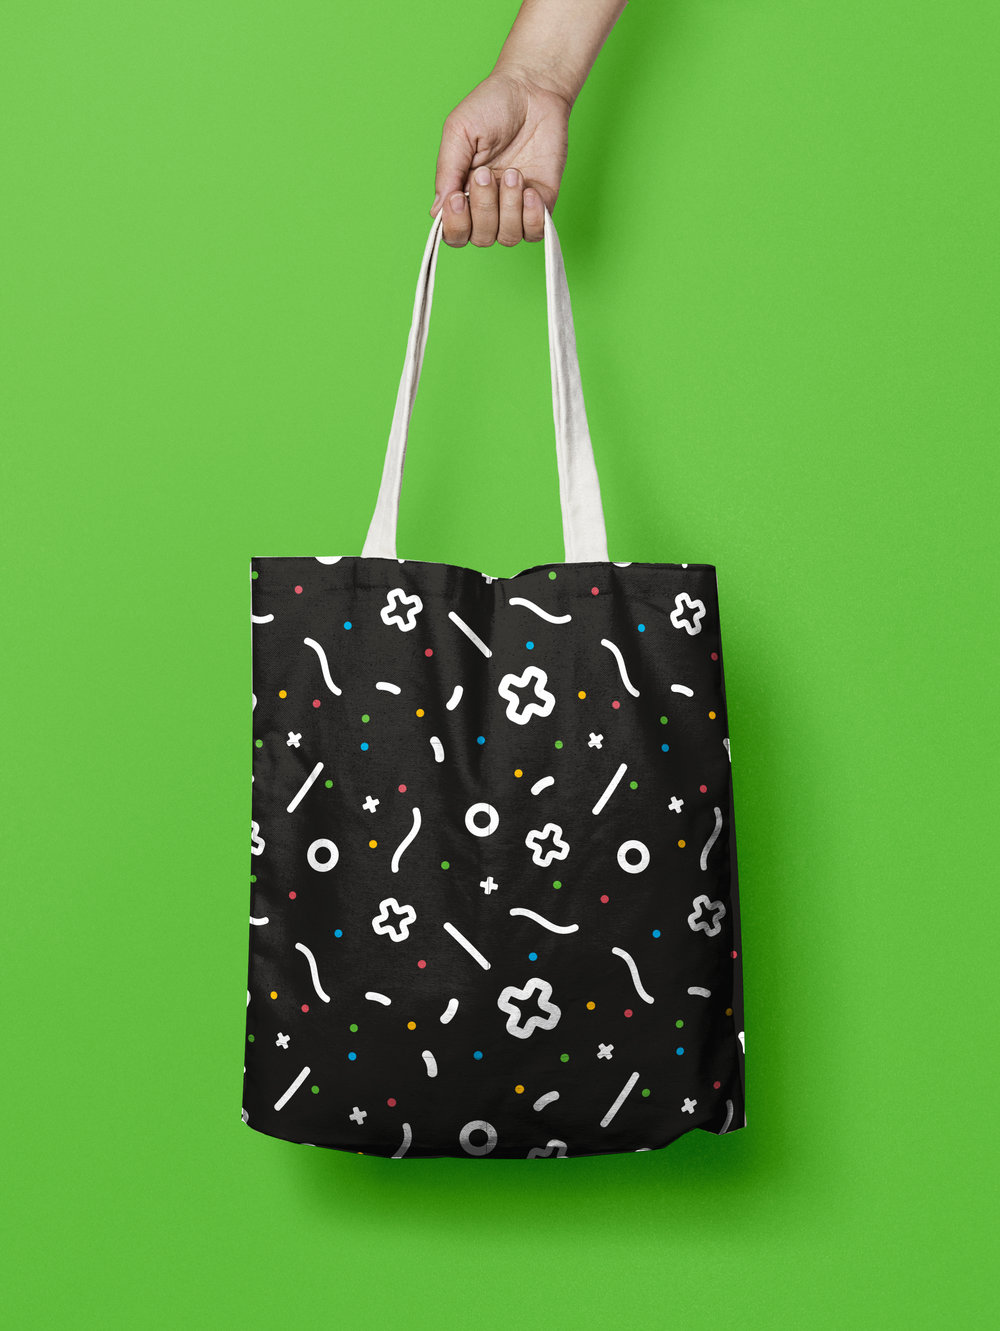 Canvas Tote Bag MockUpWIG.jpg